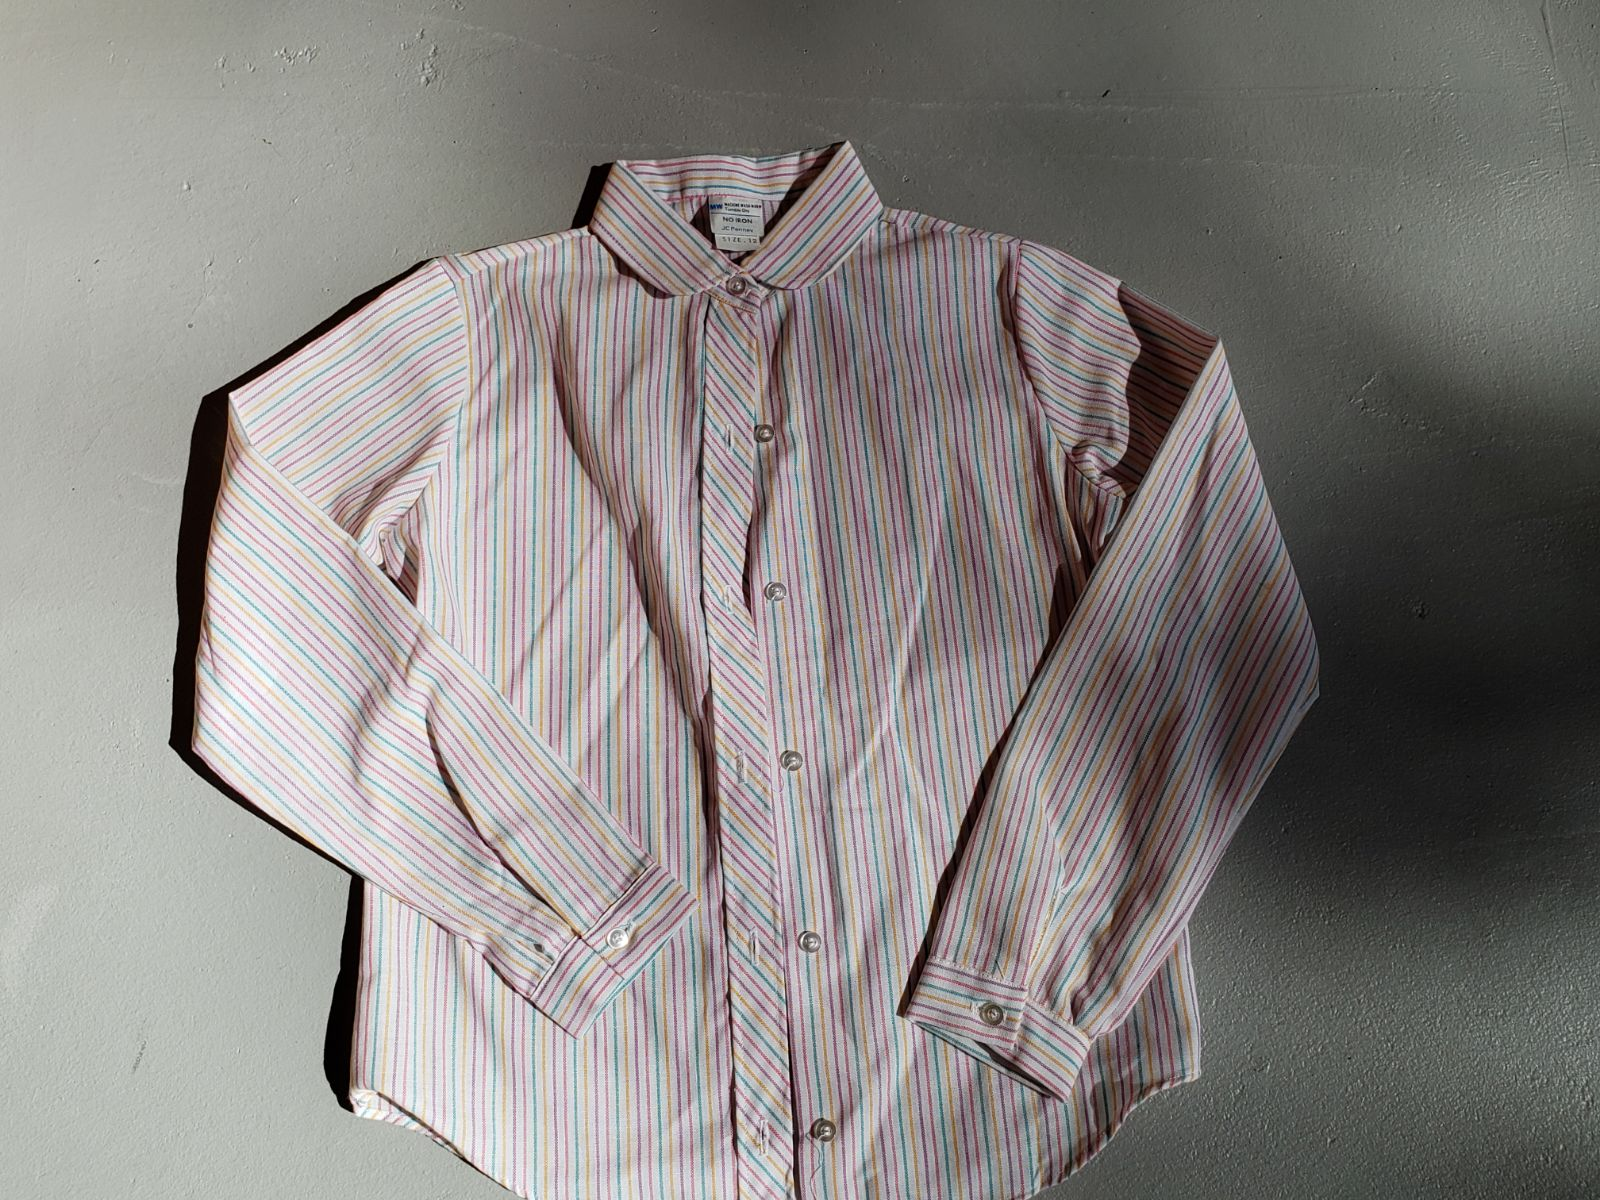 Vintage 1980s JCPENNEY Button Down